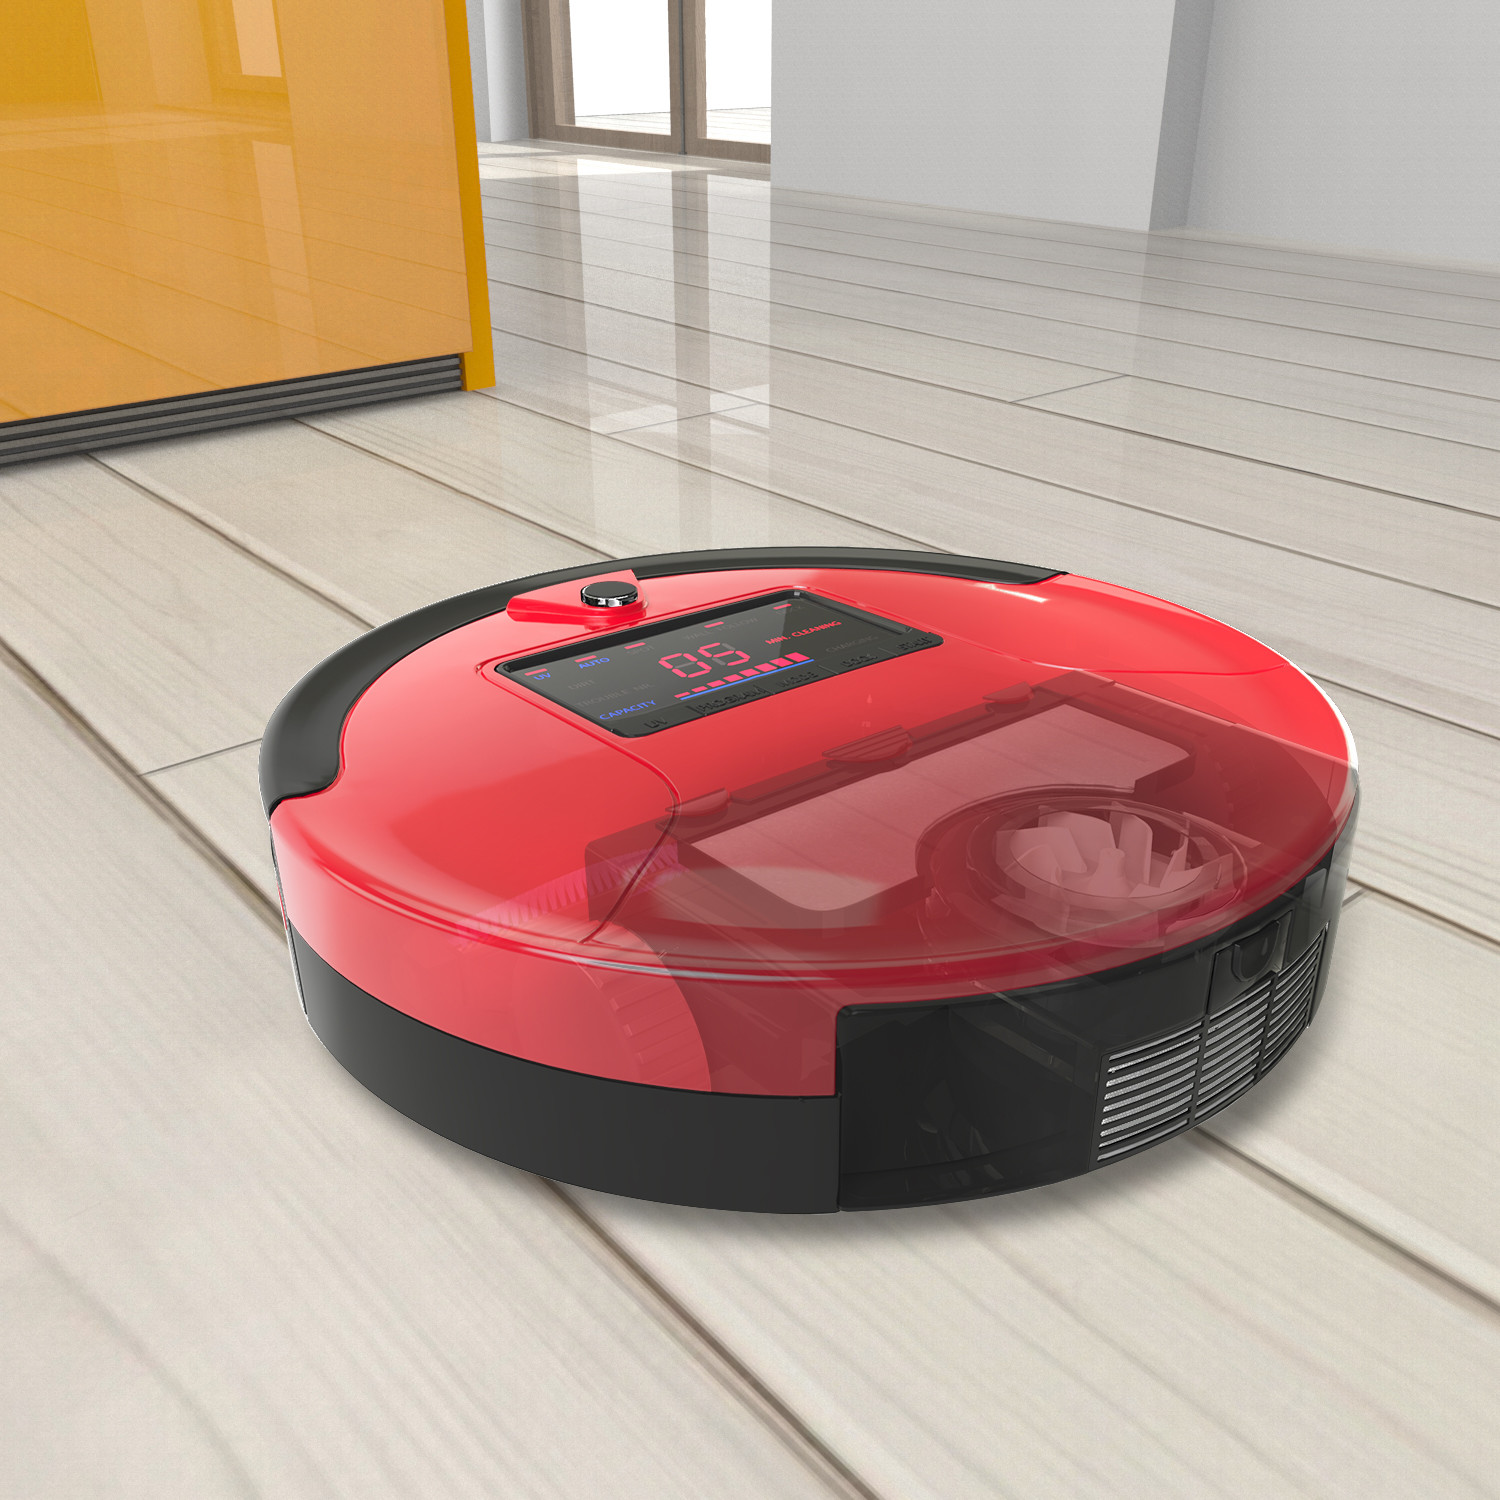 25 Lovable Hardwood Flooring Vacuums Recommendations